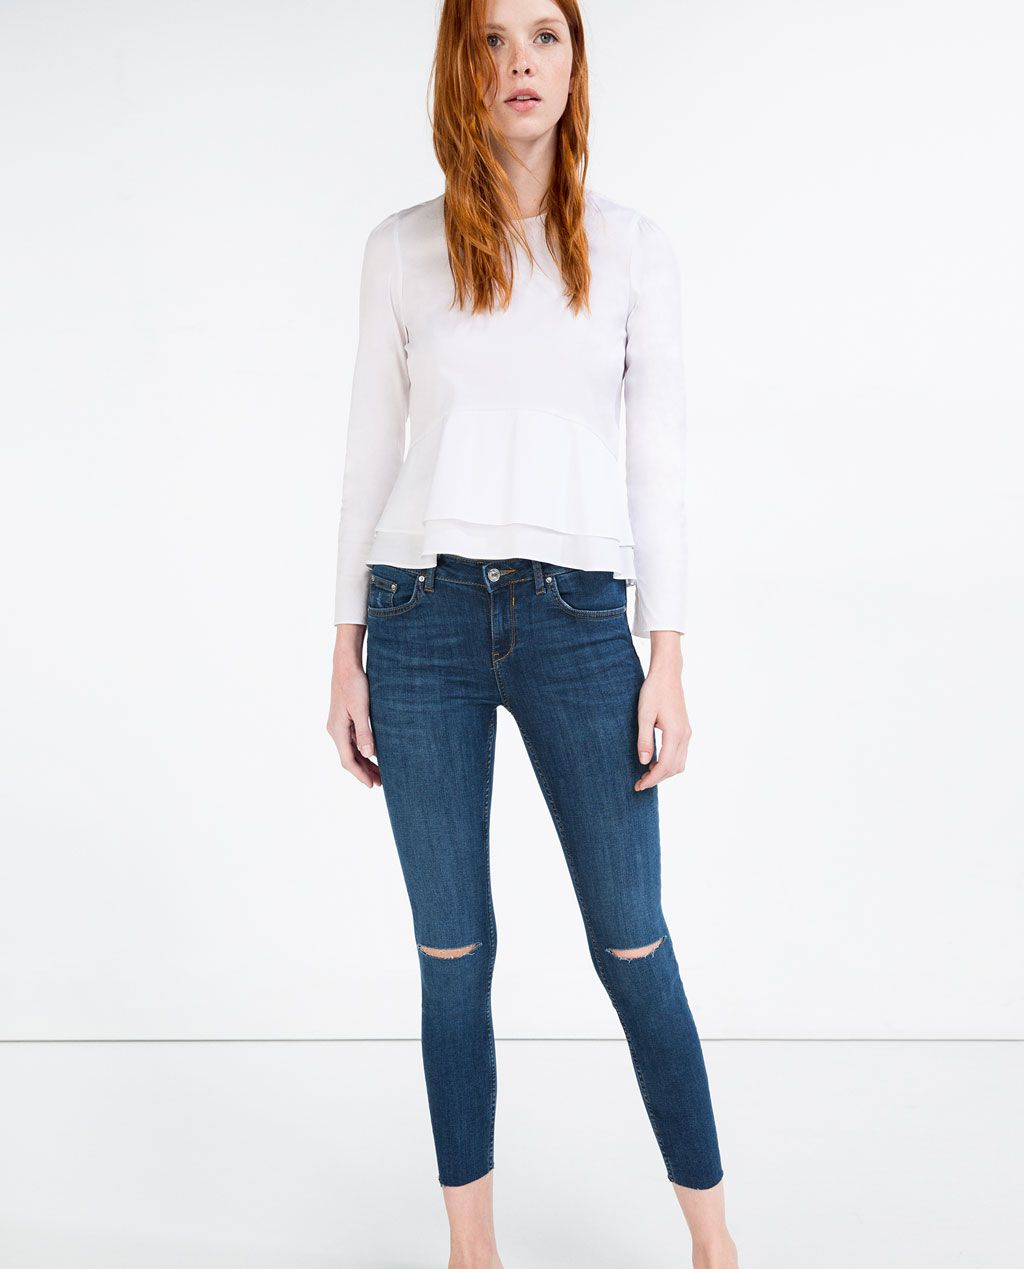 ZARA - WOMAN - CROPPED MID-RISE SKINNY JEANS